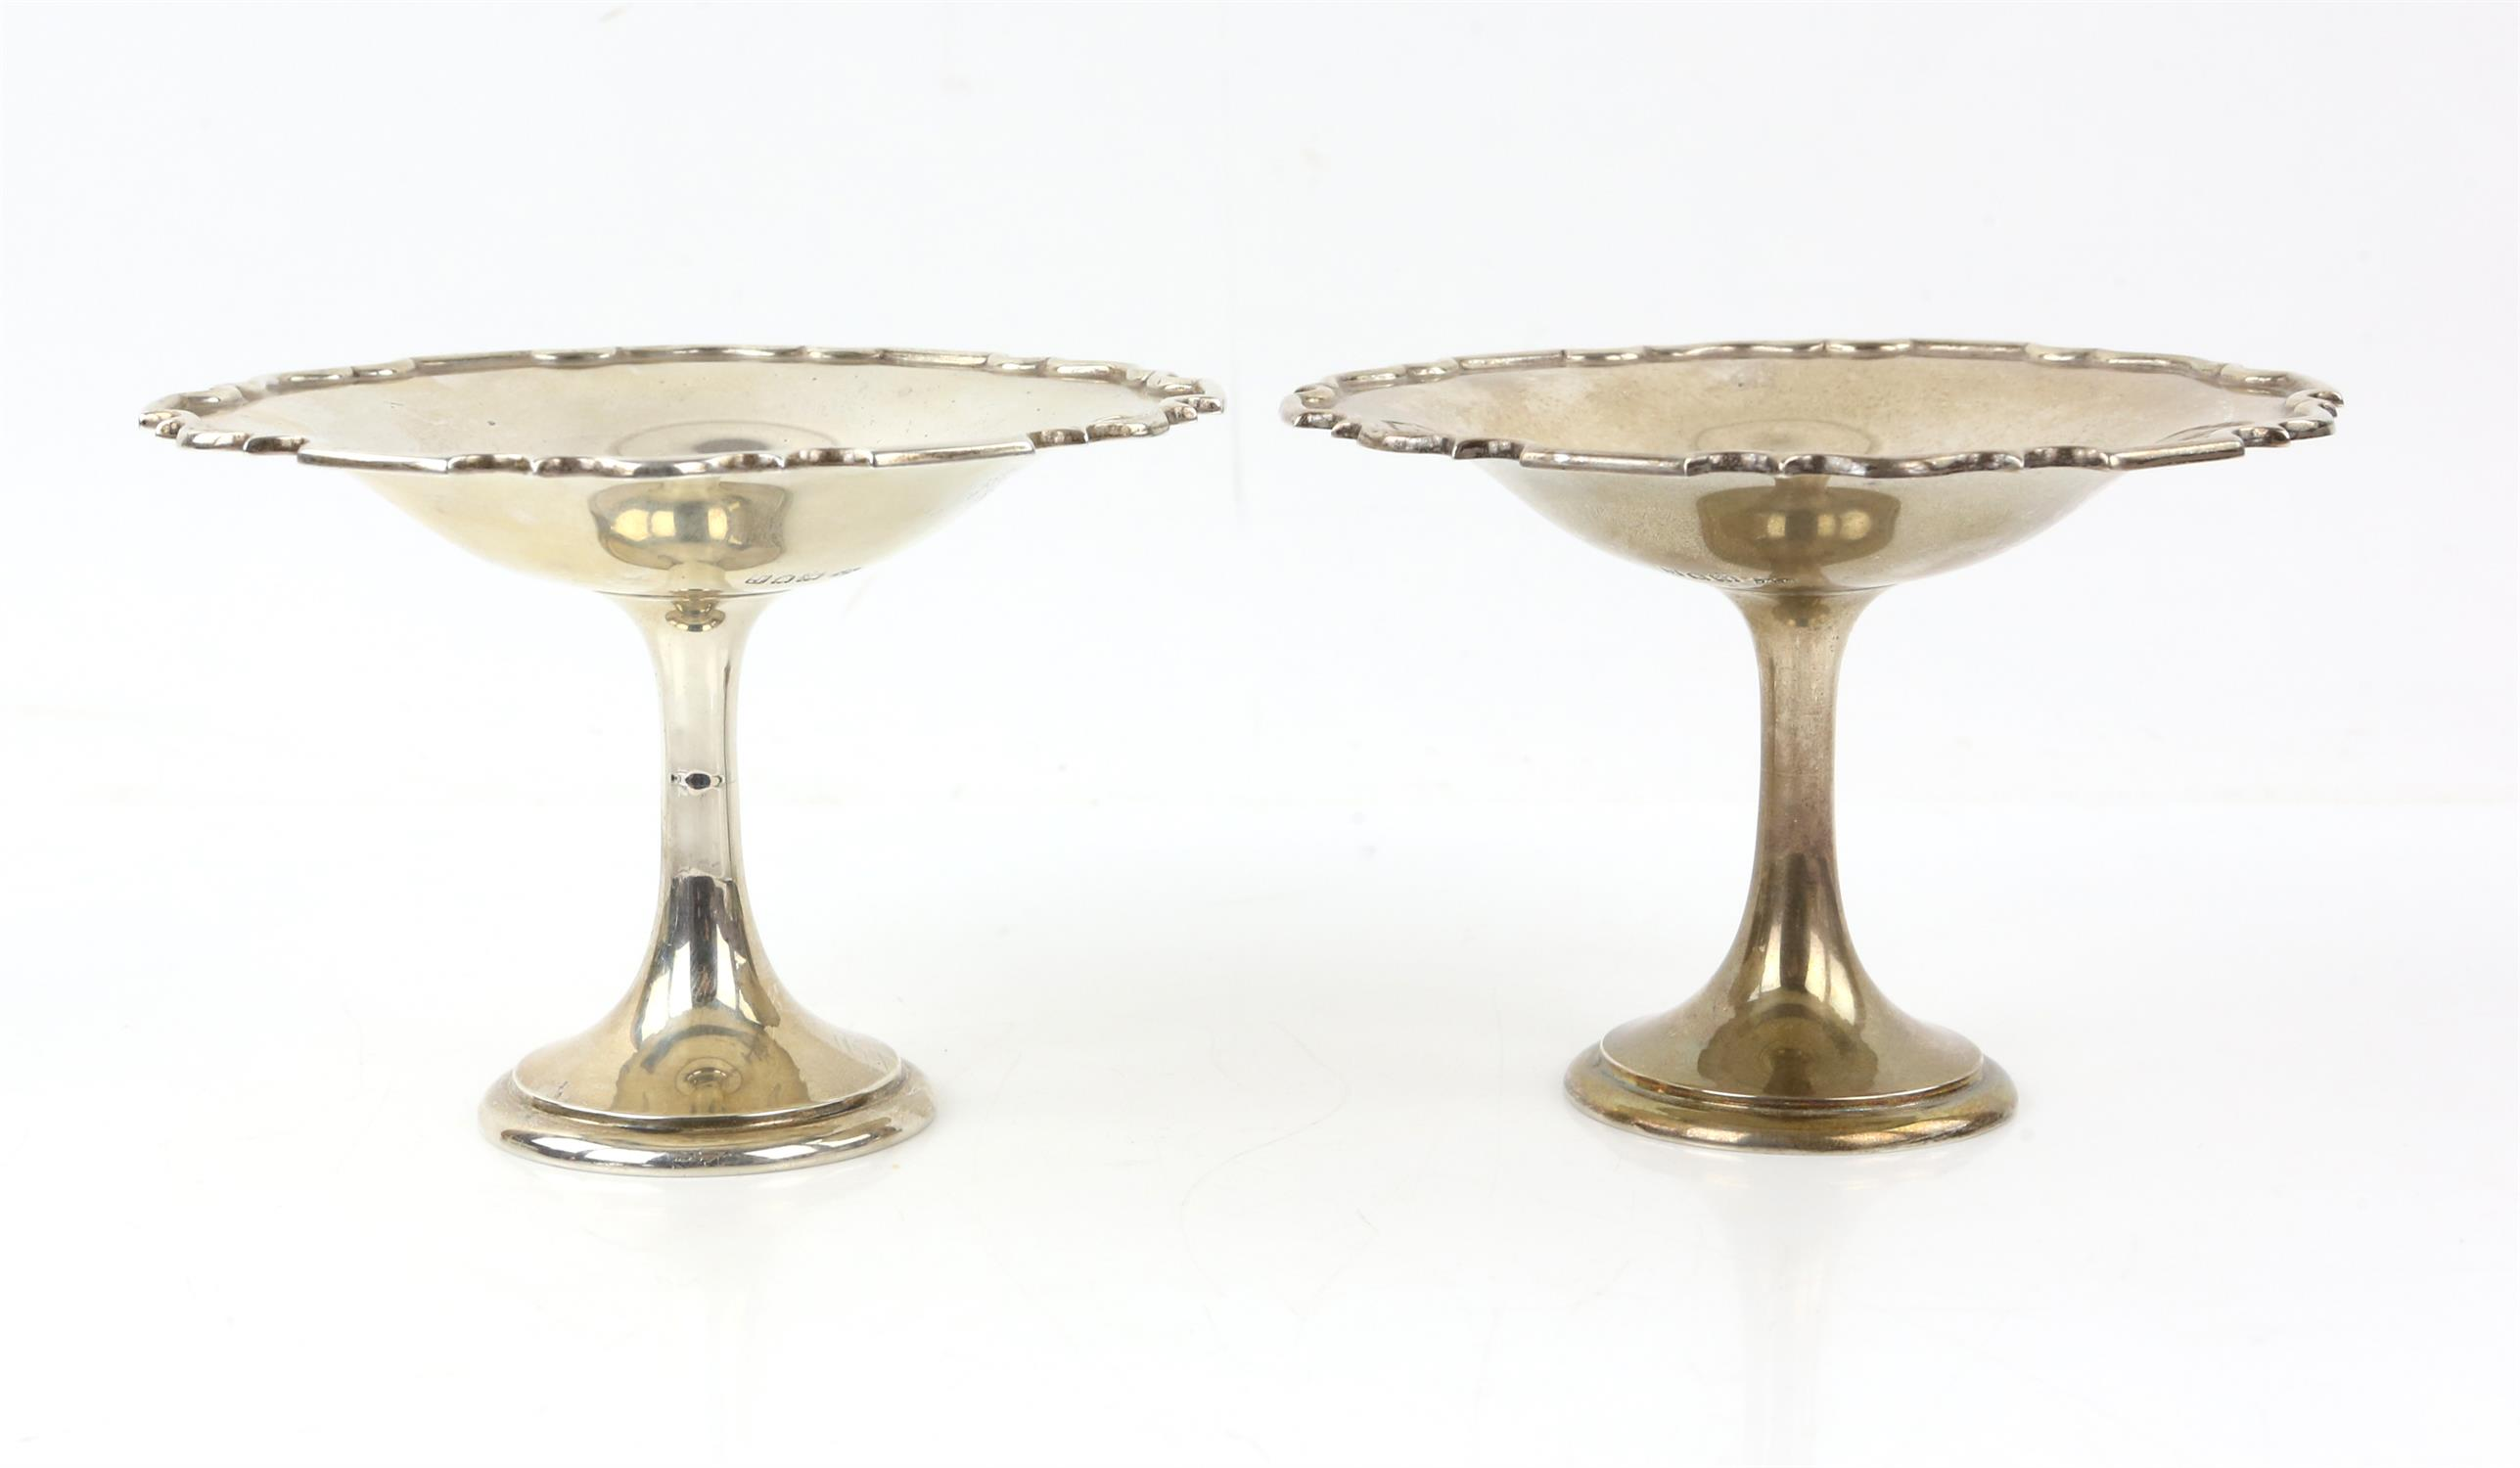 Pair of Mappin and Webb silver pedestal Tazzas with pie crust edges, London 1912 - Image 5 of 5